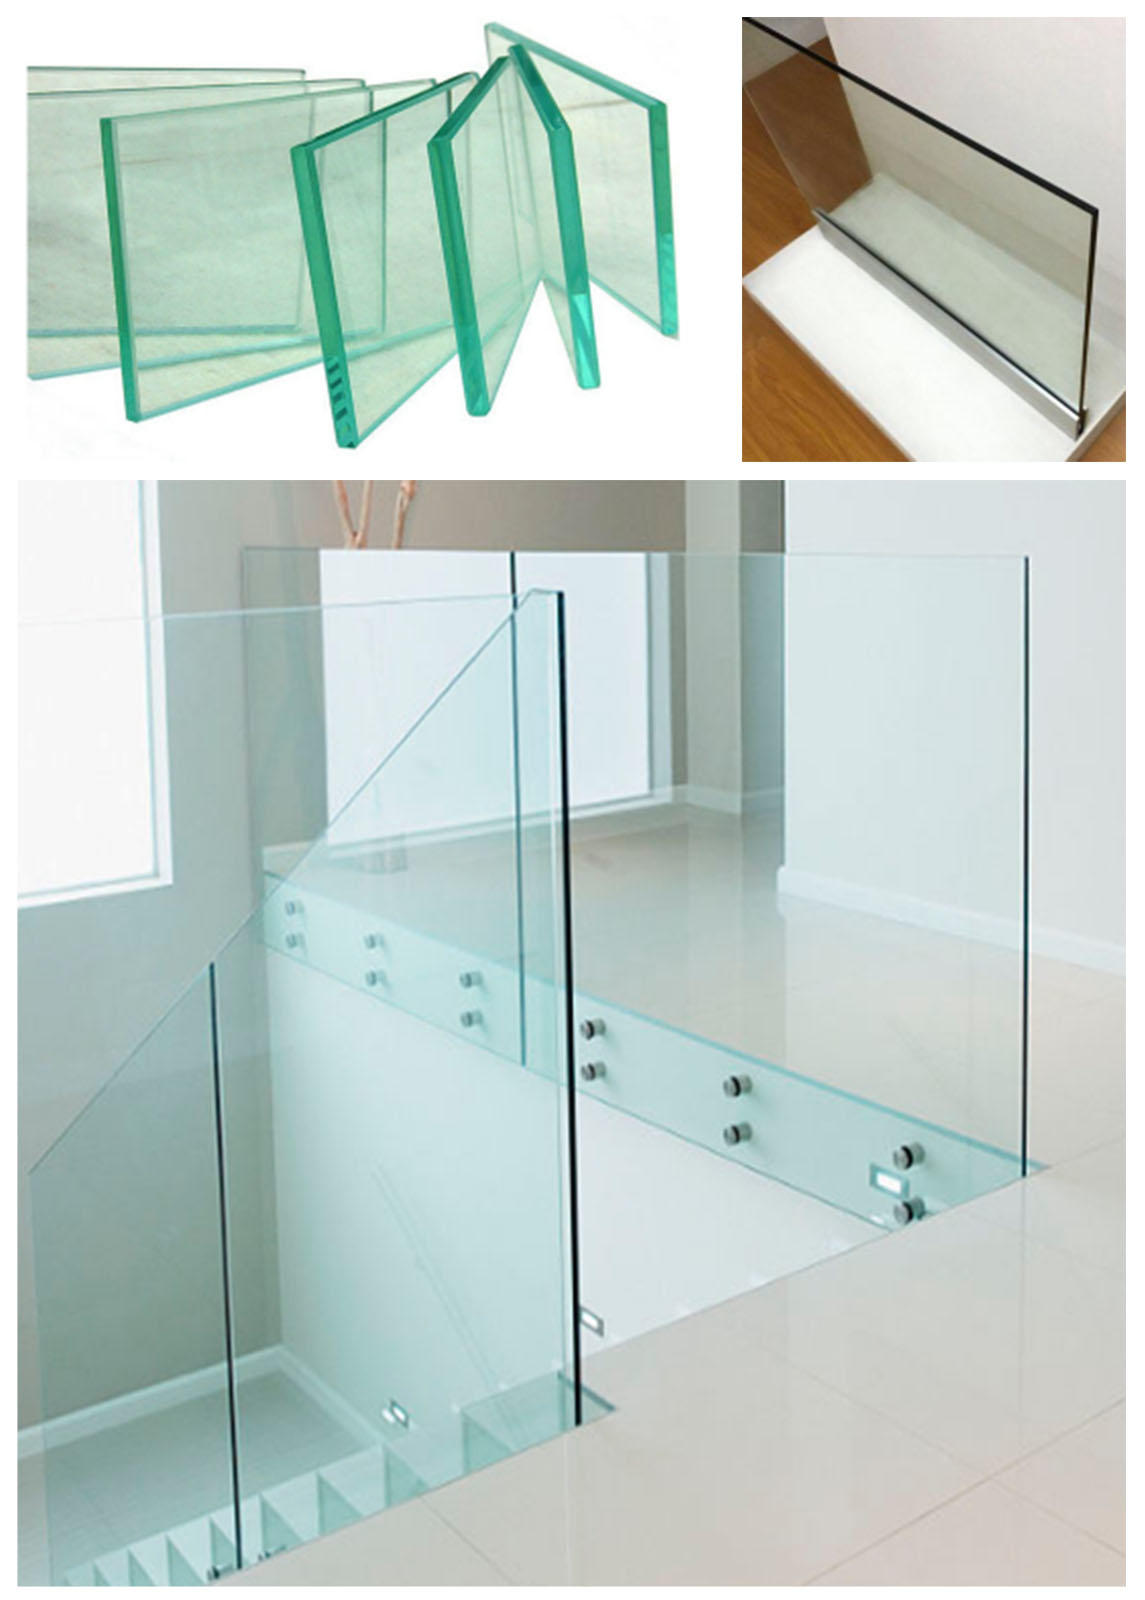 JinYi fencing laminated glass sheets supplier for safety-2